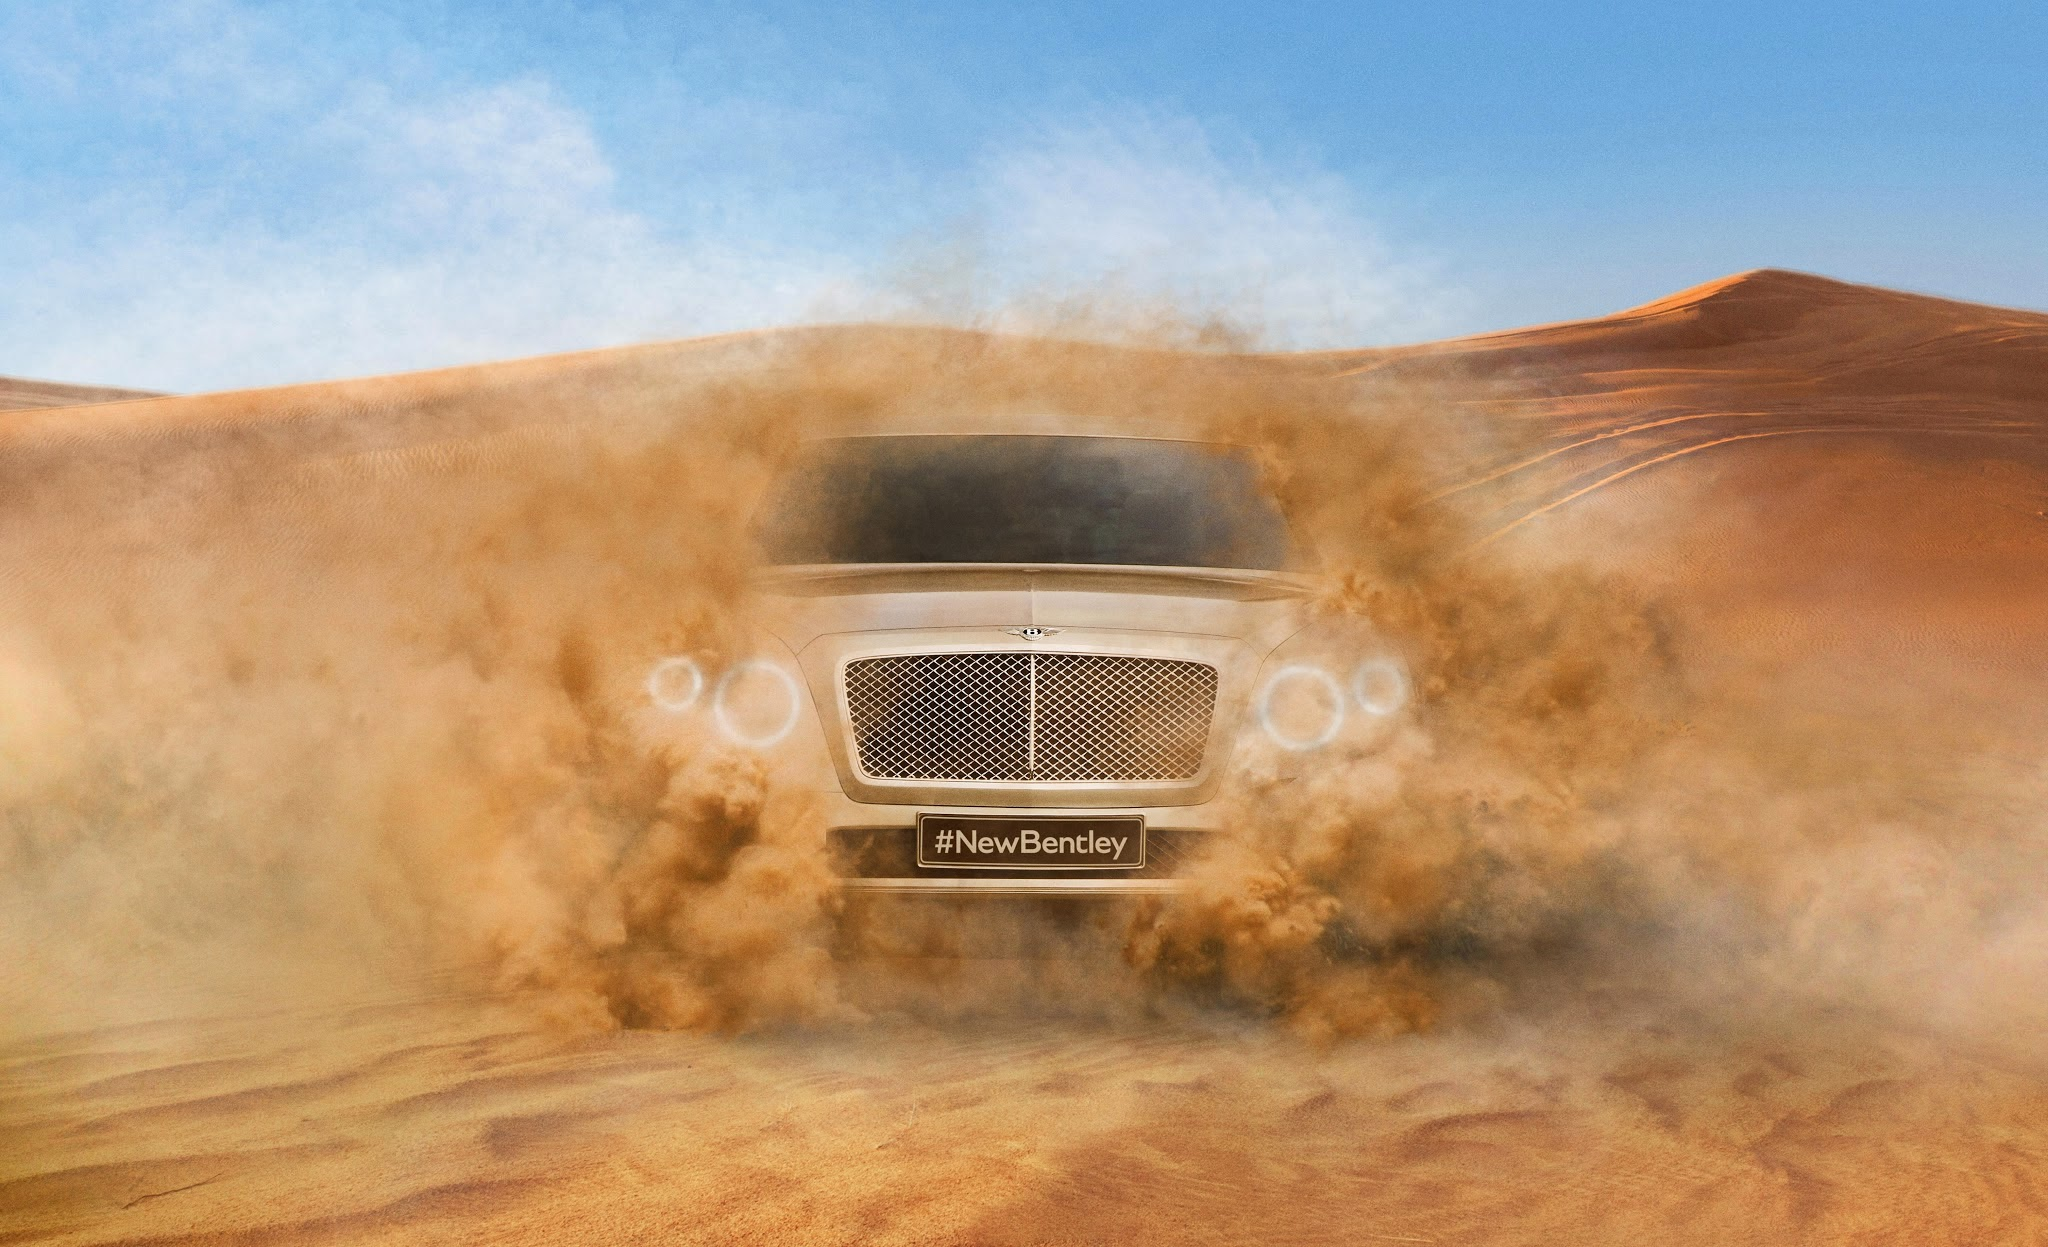 Bentley SUV Photo is Released #NewBentley